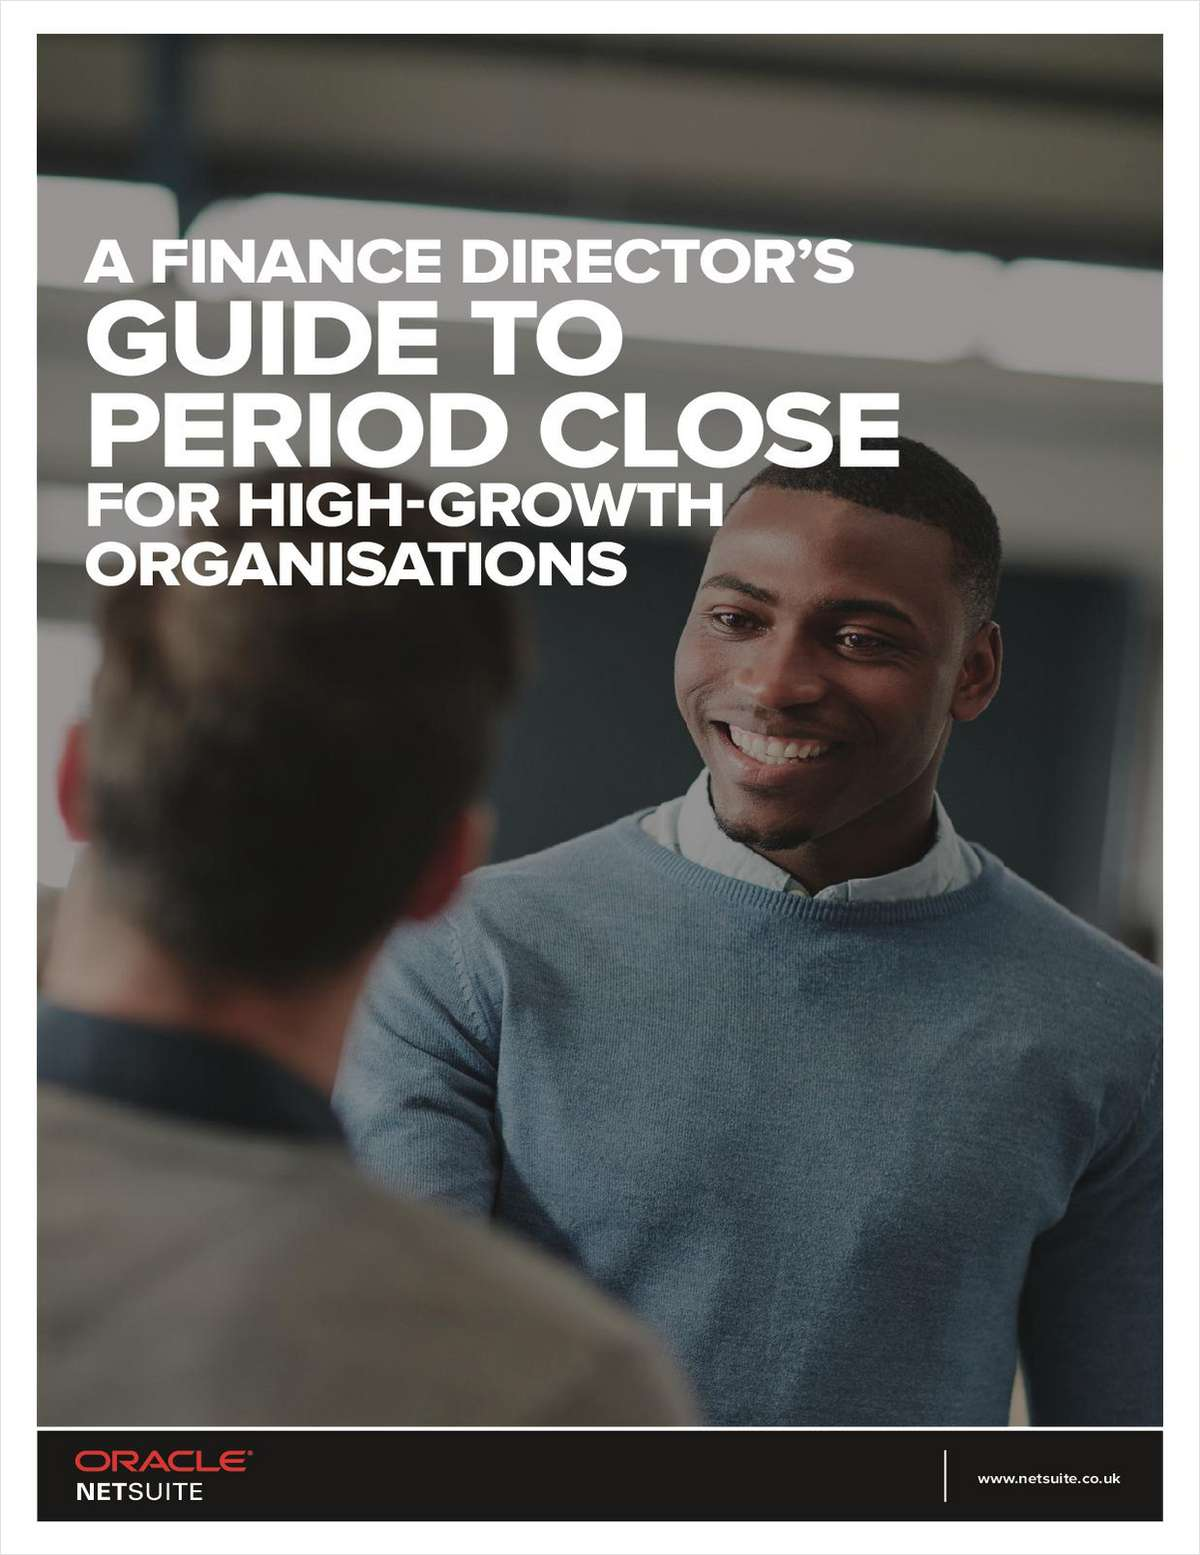 A Finance Director's Guide to Period Close in High-Growth Organisations